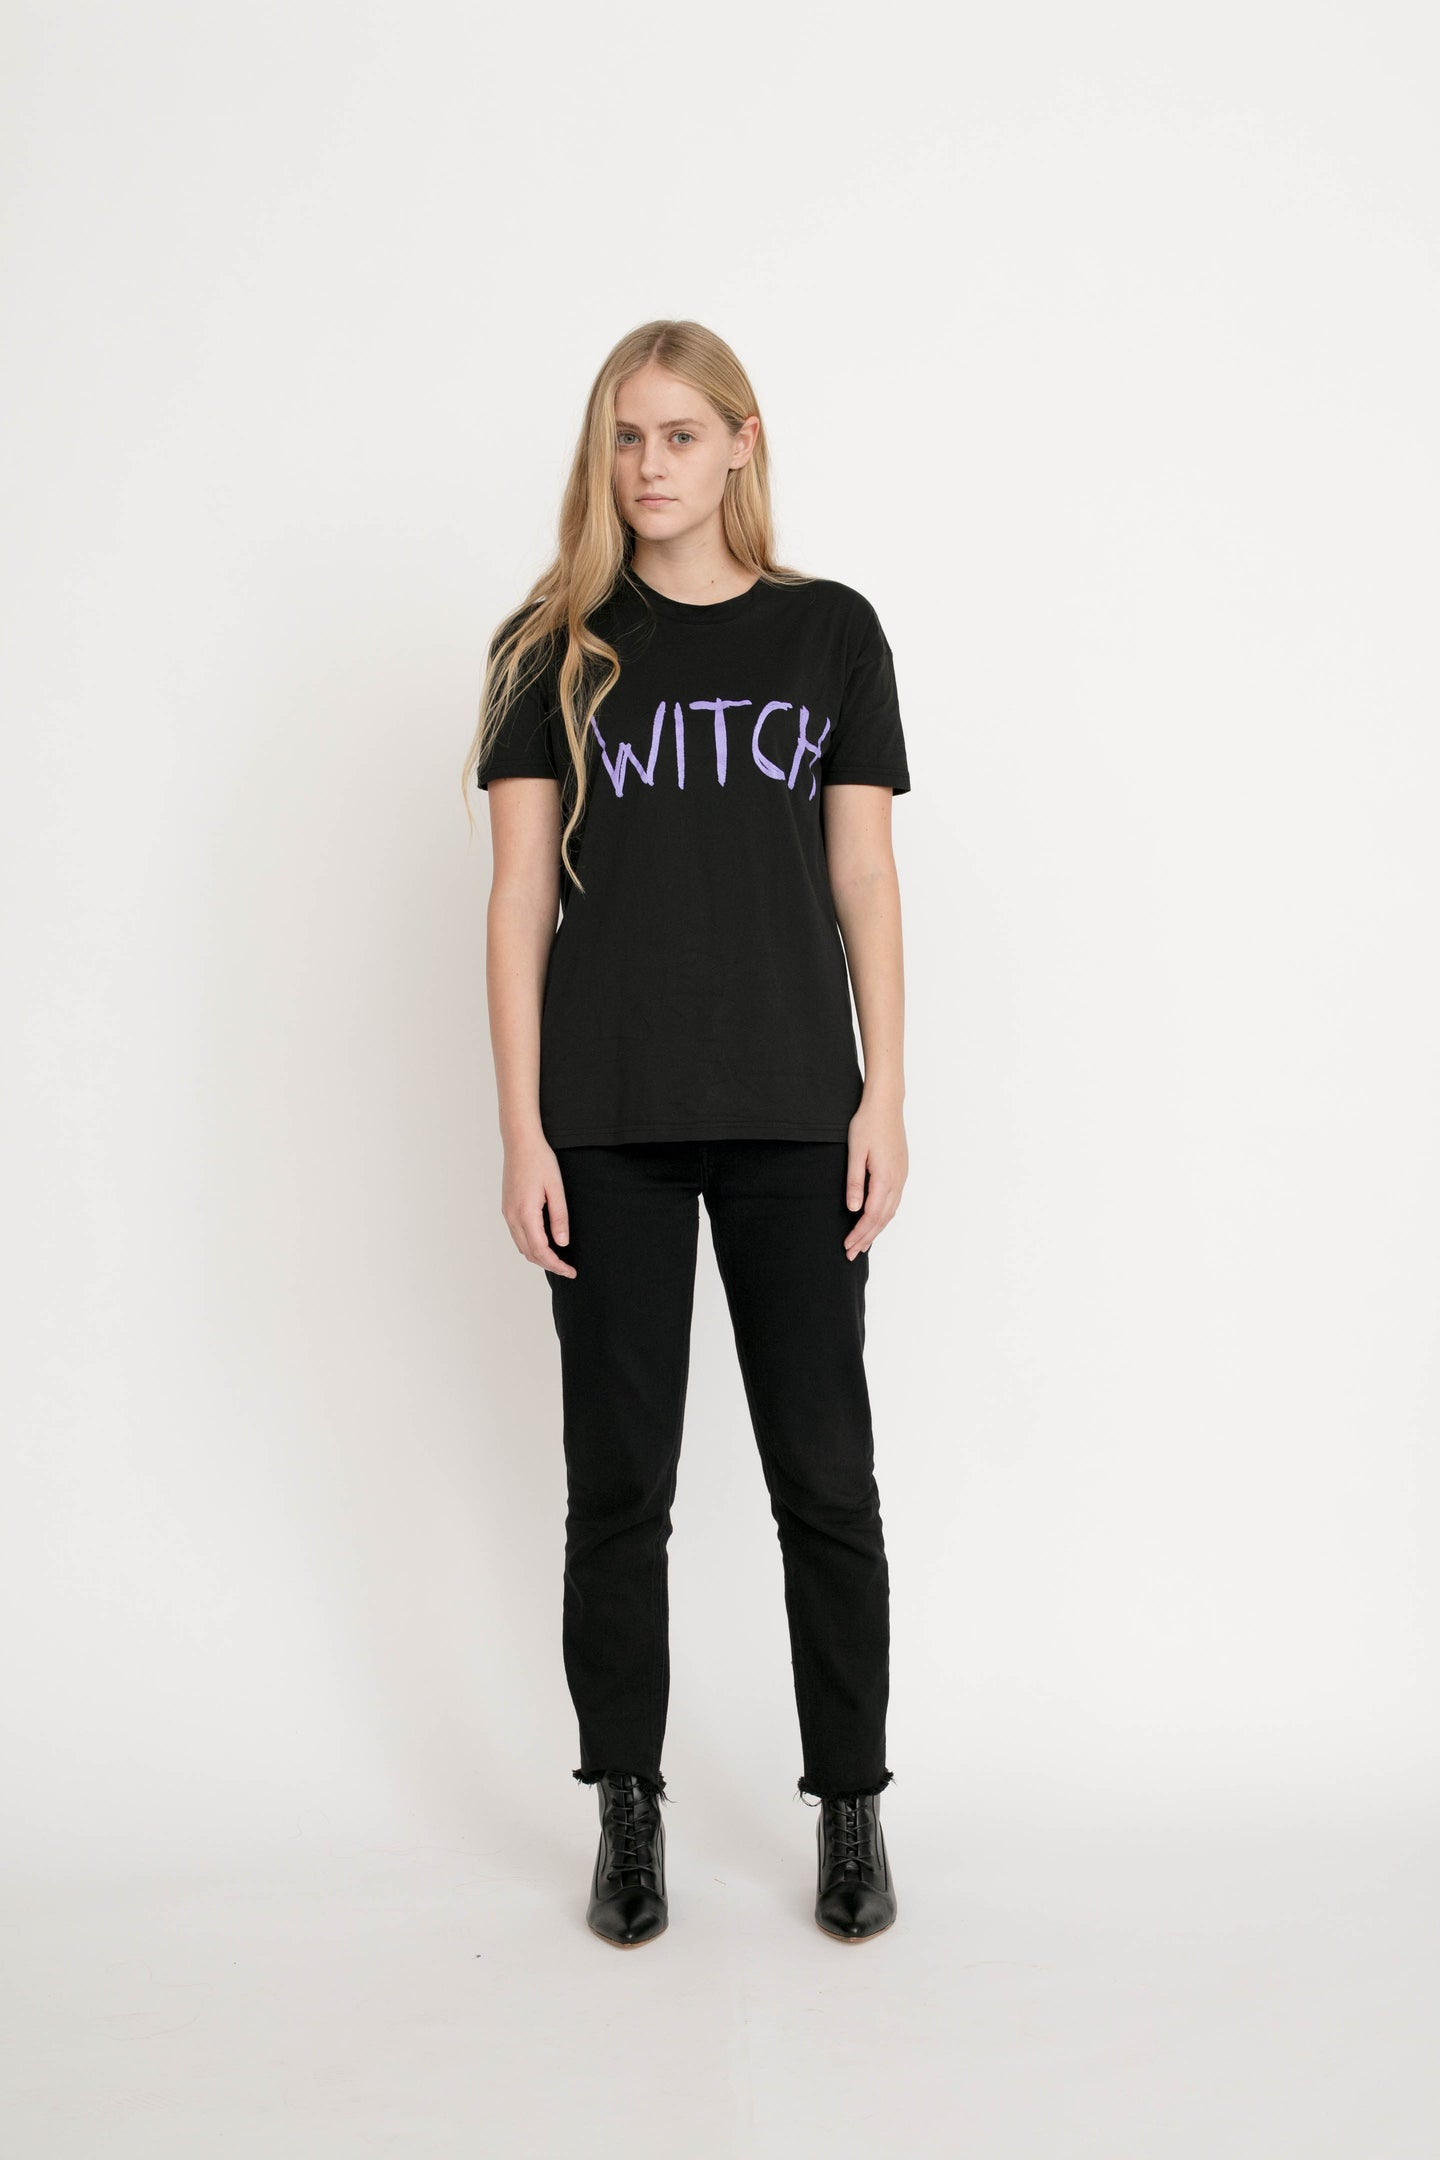 WITCH SHORT SLEEVE